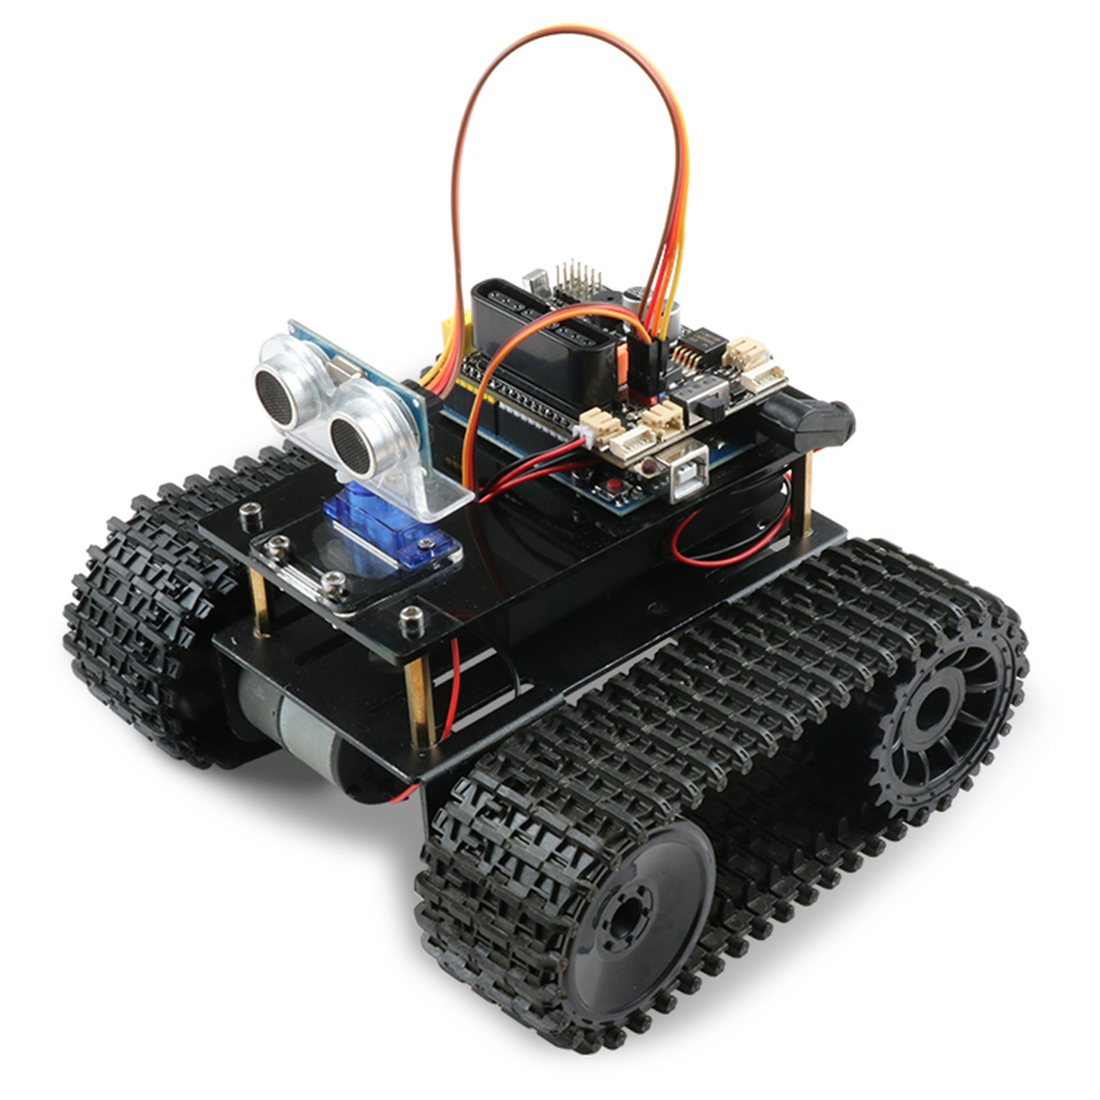 DIY Obstacle Avoidance Smart Programmable Robot Tank Educational Learning Kit For Arduino UNO Children Kids Education Toys Gift